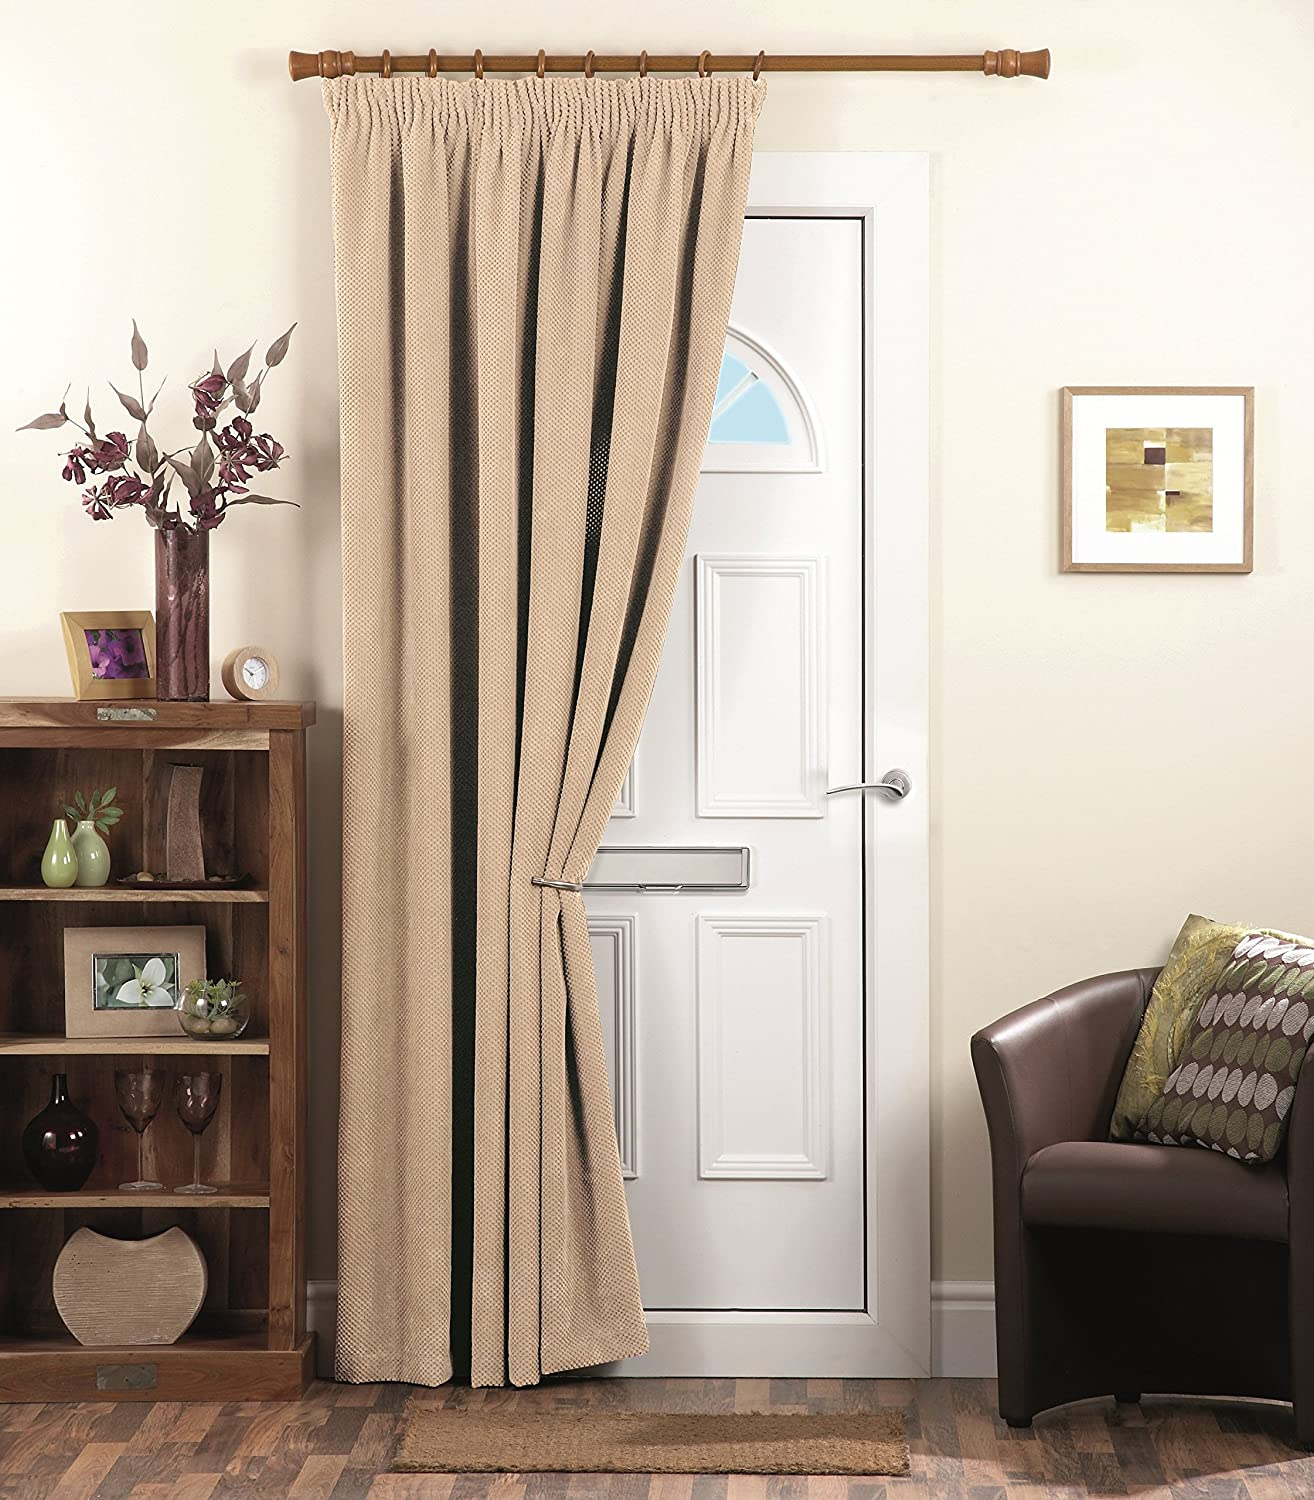 front door curtains. Dreams \u0027N\u0027 Drapes Chenille Spot Thermal Pencil Pleat Coated Door Curtain, Cream, 66 X 84 Inch: Amazon.co.uk: Kitchen \u0026 Home Front Curtains S